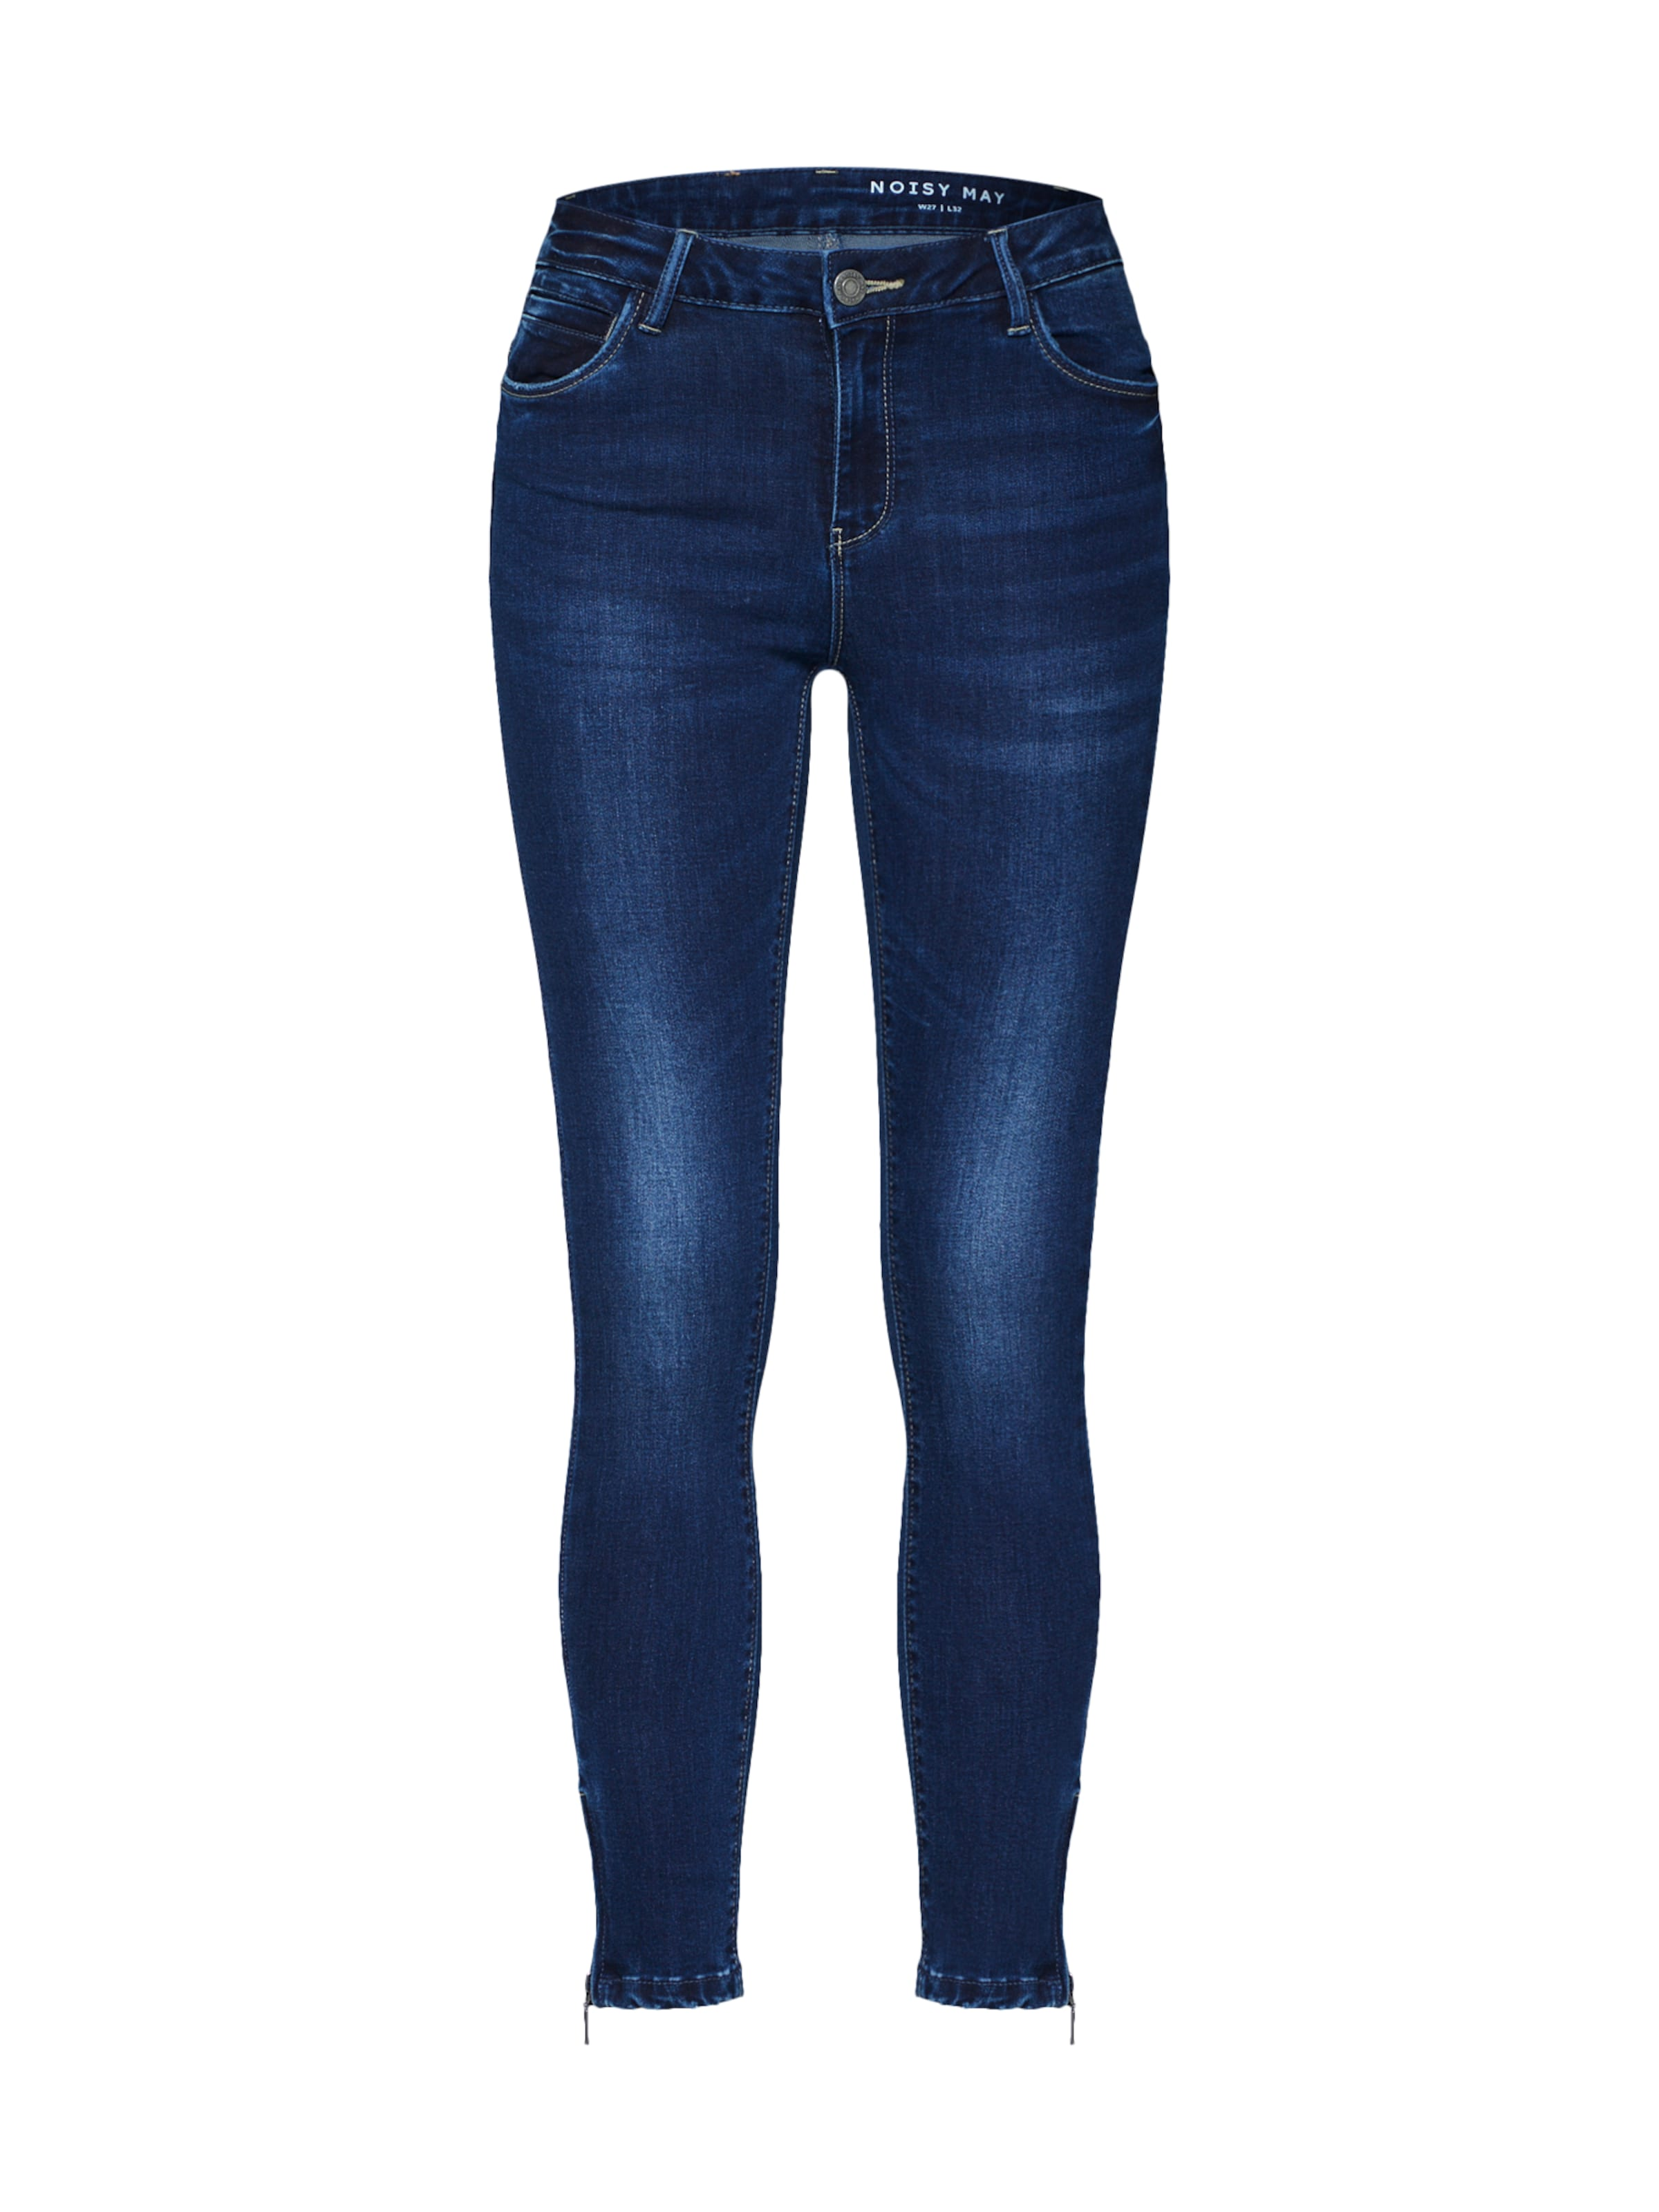 'nmkimmy Nw' Jeans Blue In May Noisy Denim 2HWYDIeE9b